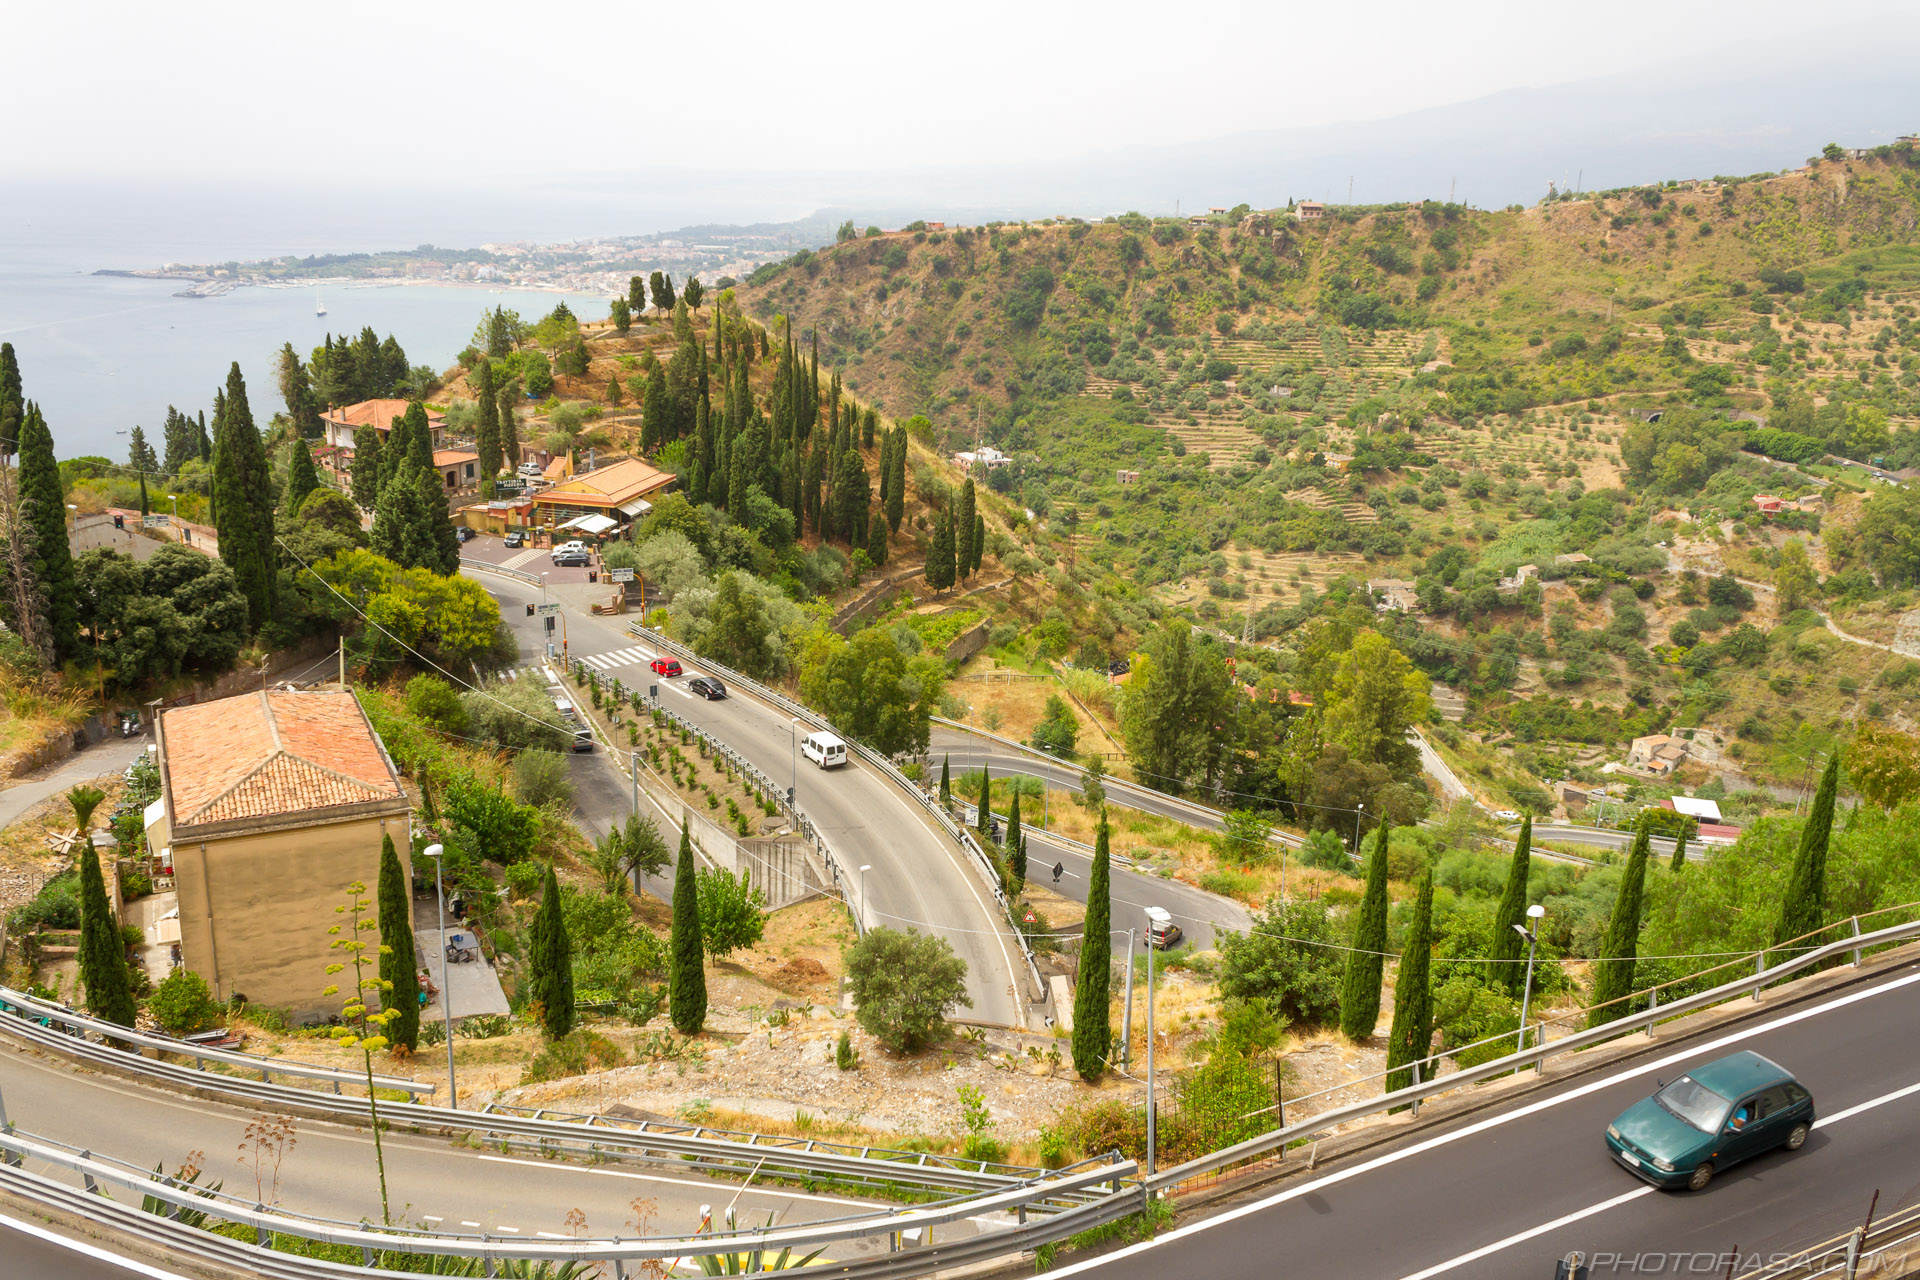 http://photorasa.com/taormina/roads-up-to-taormina-town/